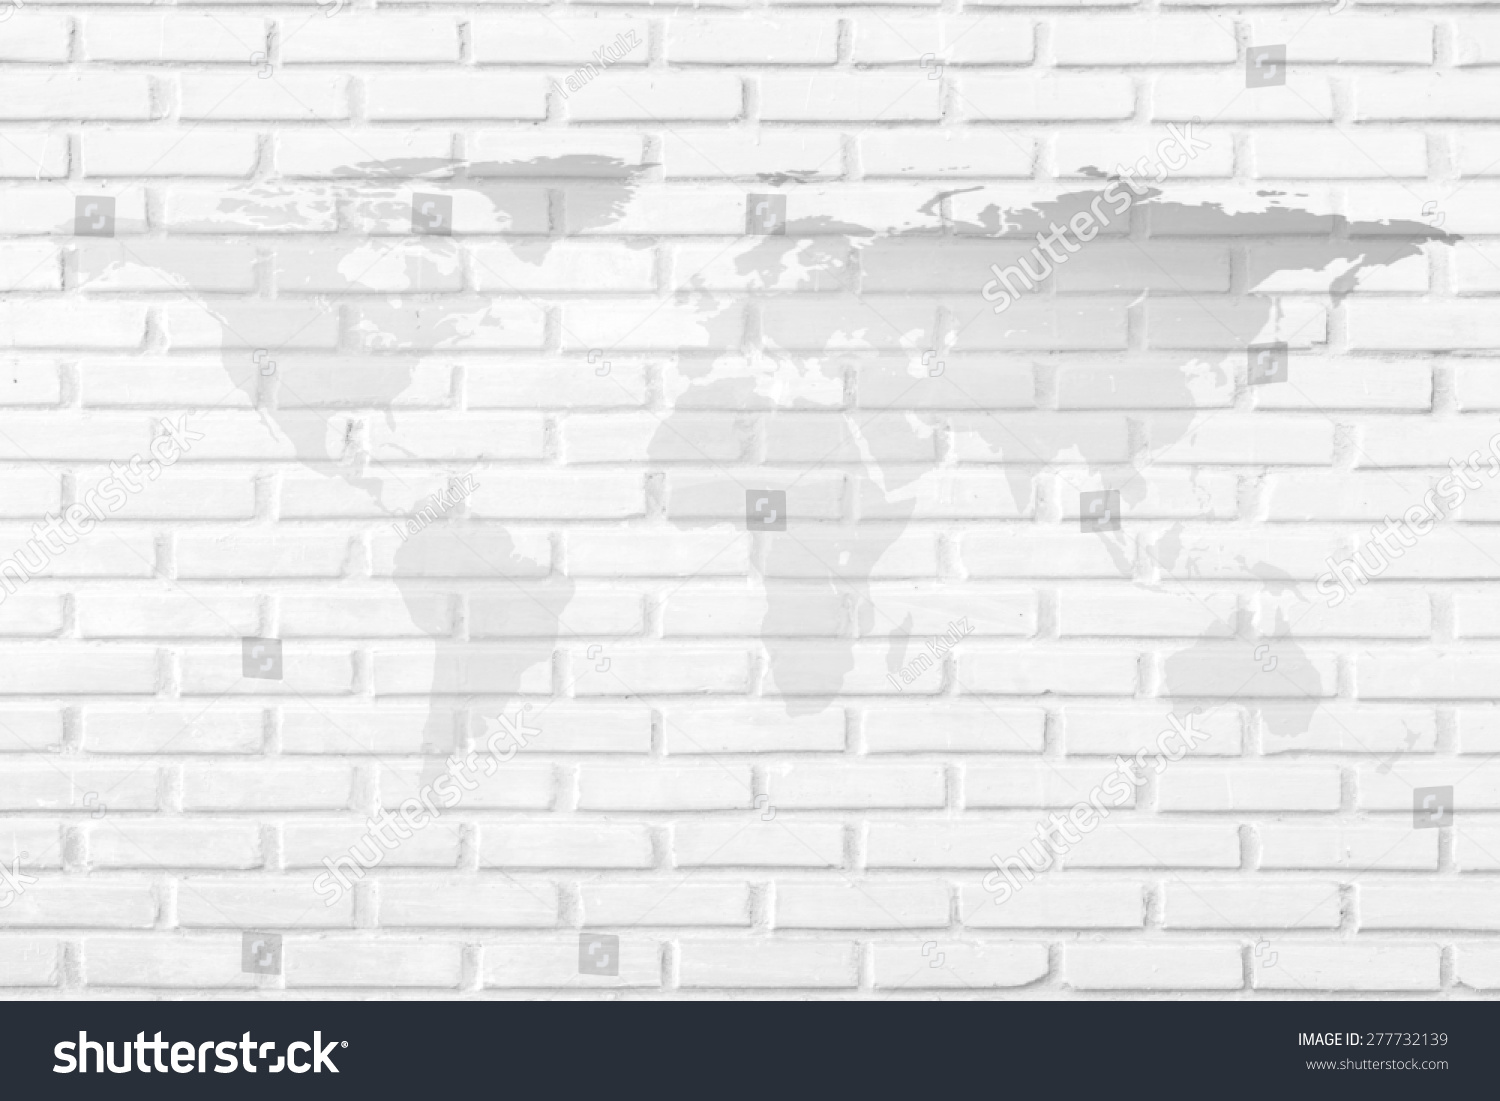 World map on white brick background stock photo edit now shutterstock world map on white brick as a background gumiabroncs Gallery